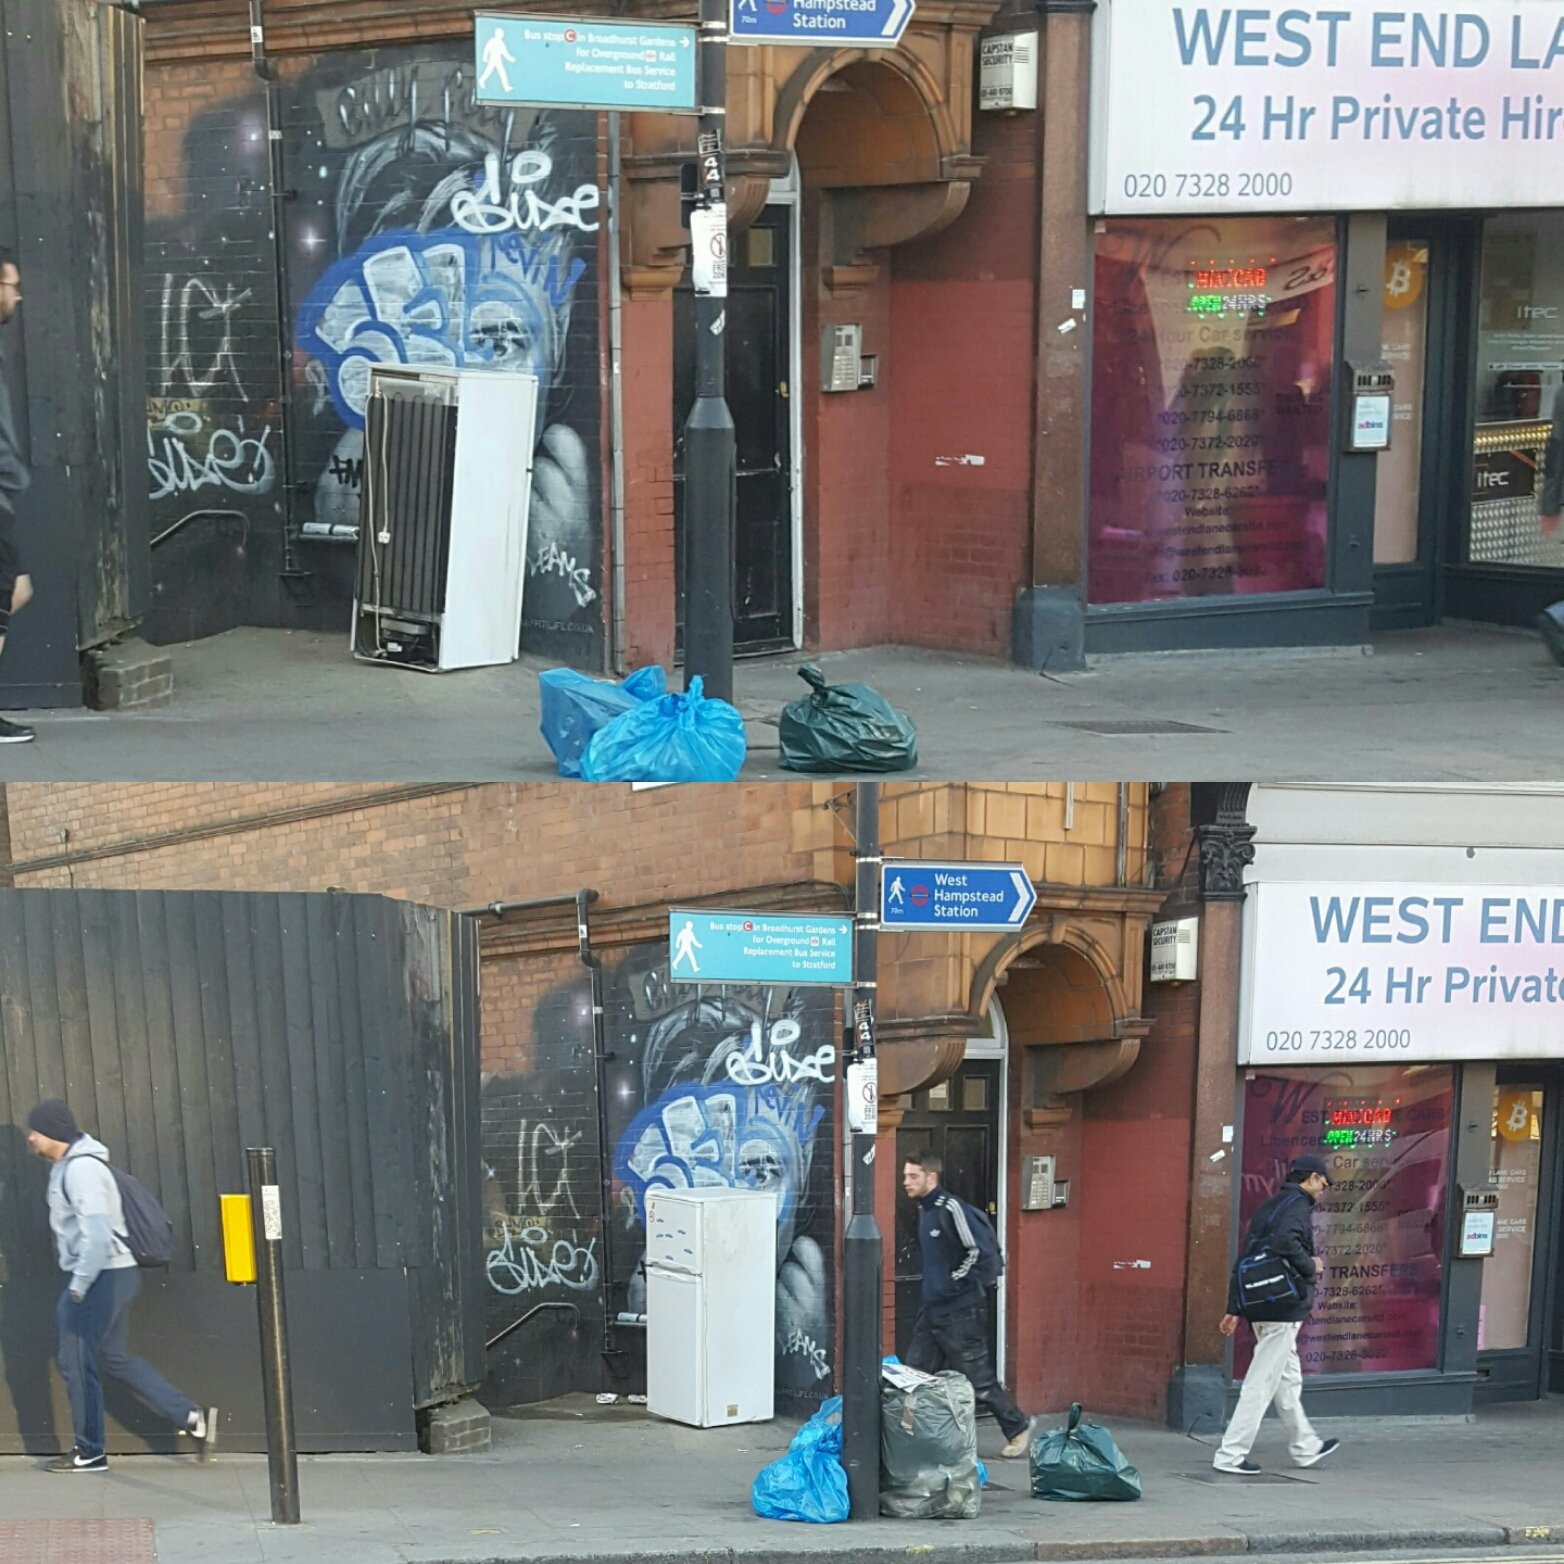 @WHampstead @WHSQresidents Thursday Morning, Friday Morning.  Spot the difference. https://t.co/kAuFQMIcqR